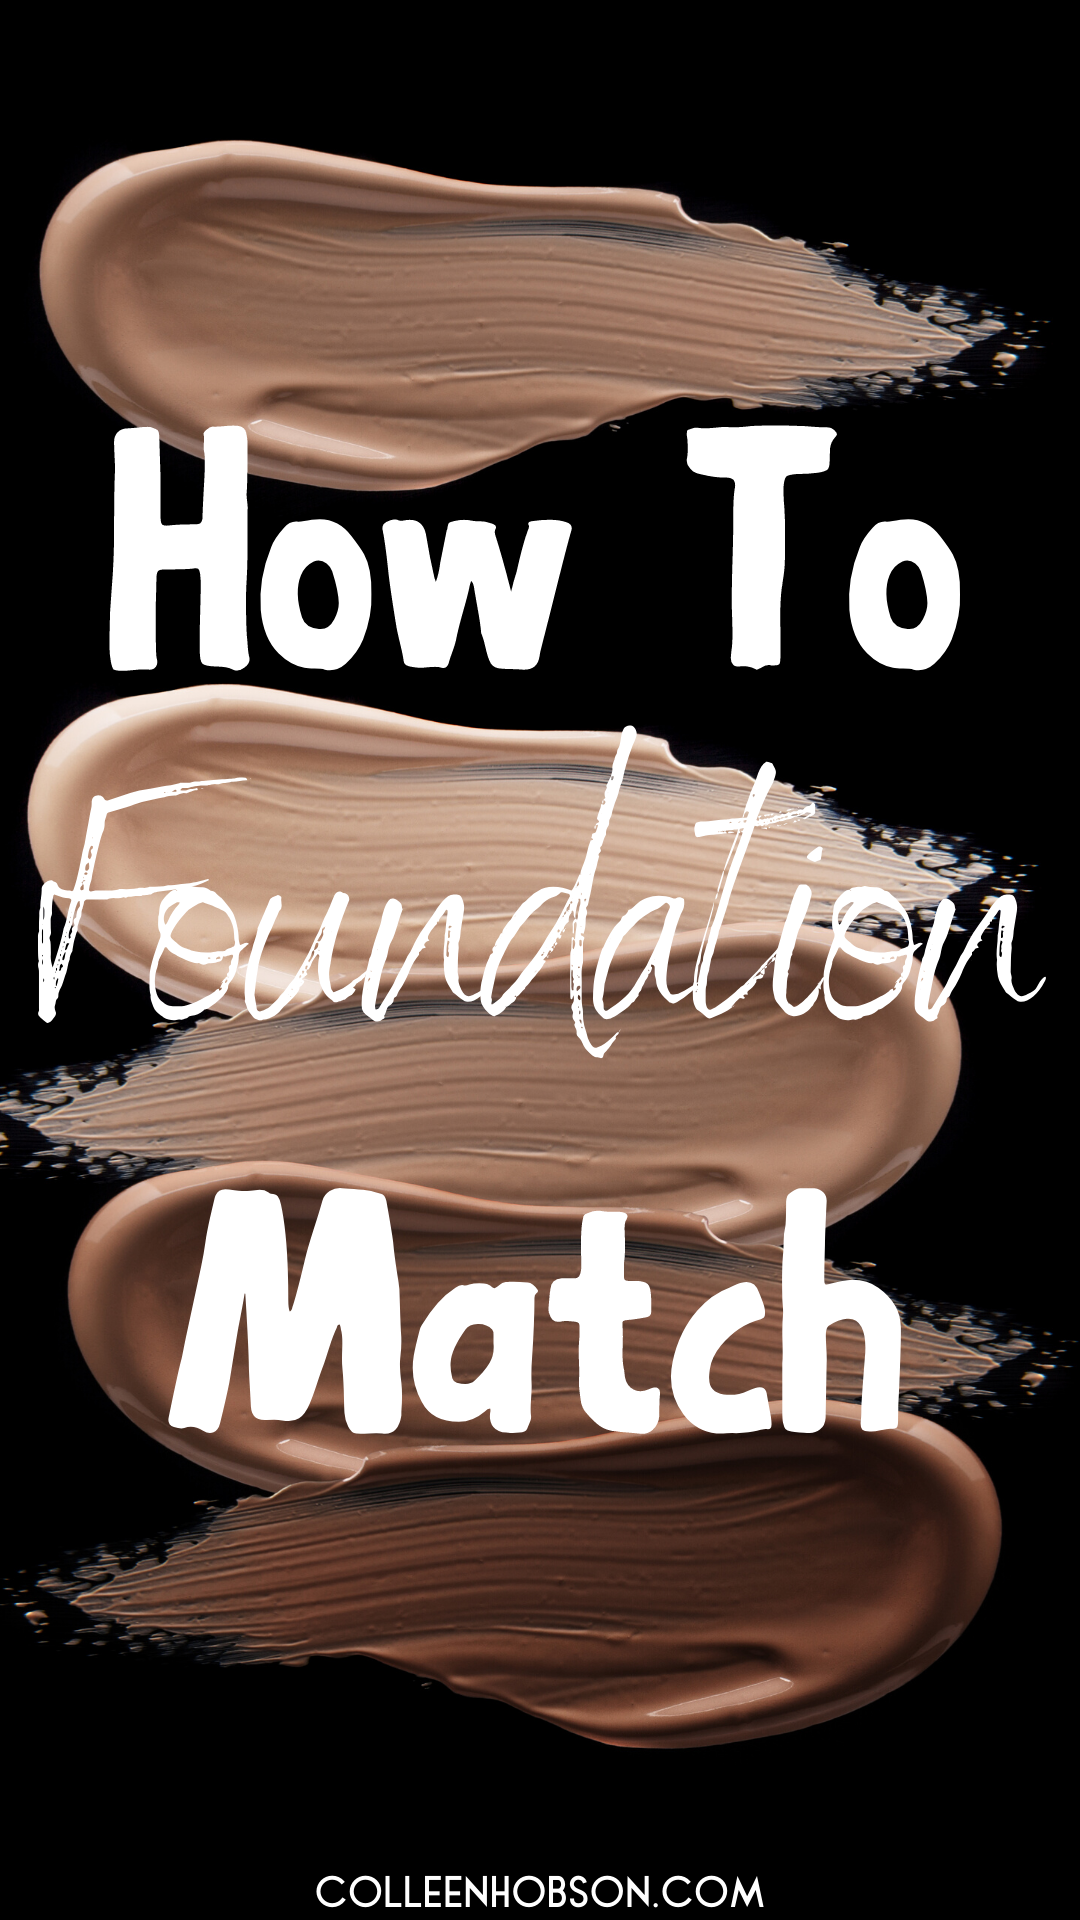 How To Find Your Foundation Match in 2020 Makeup tips